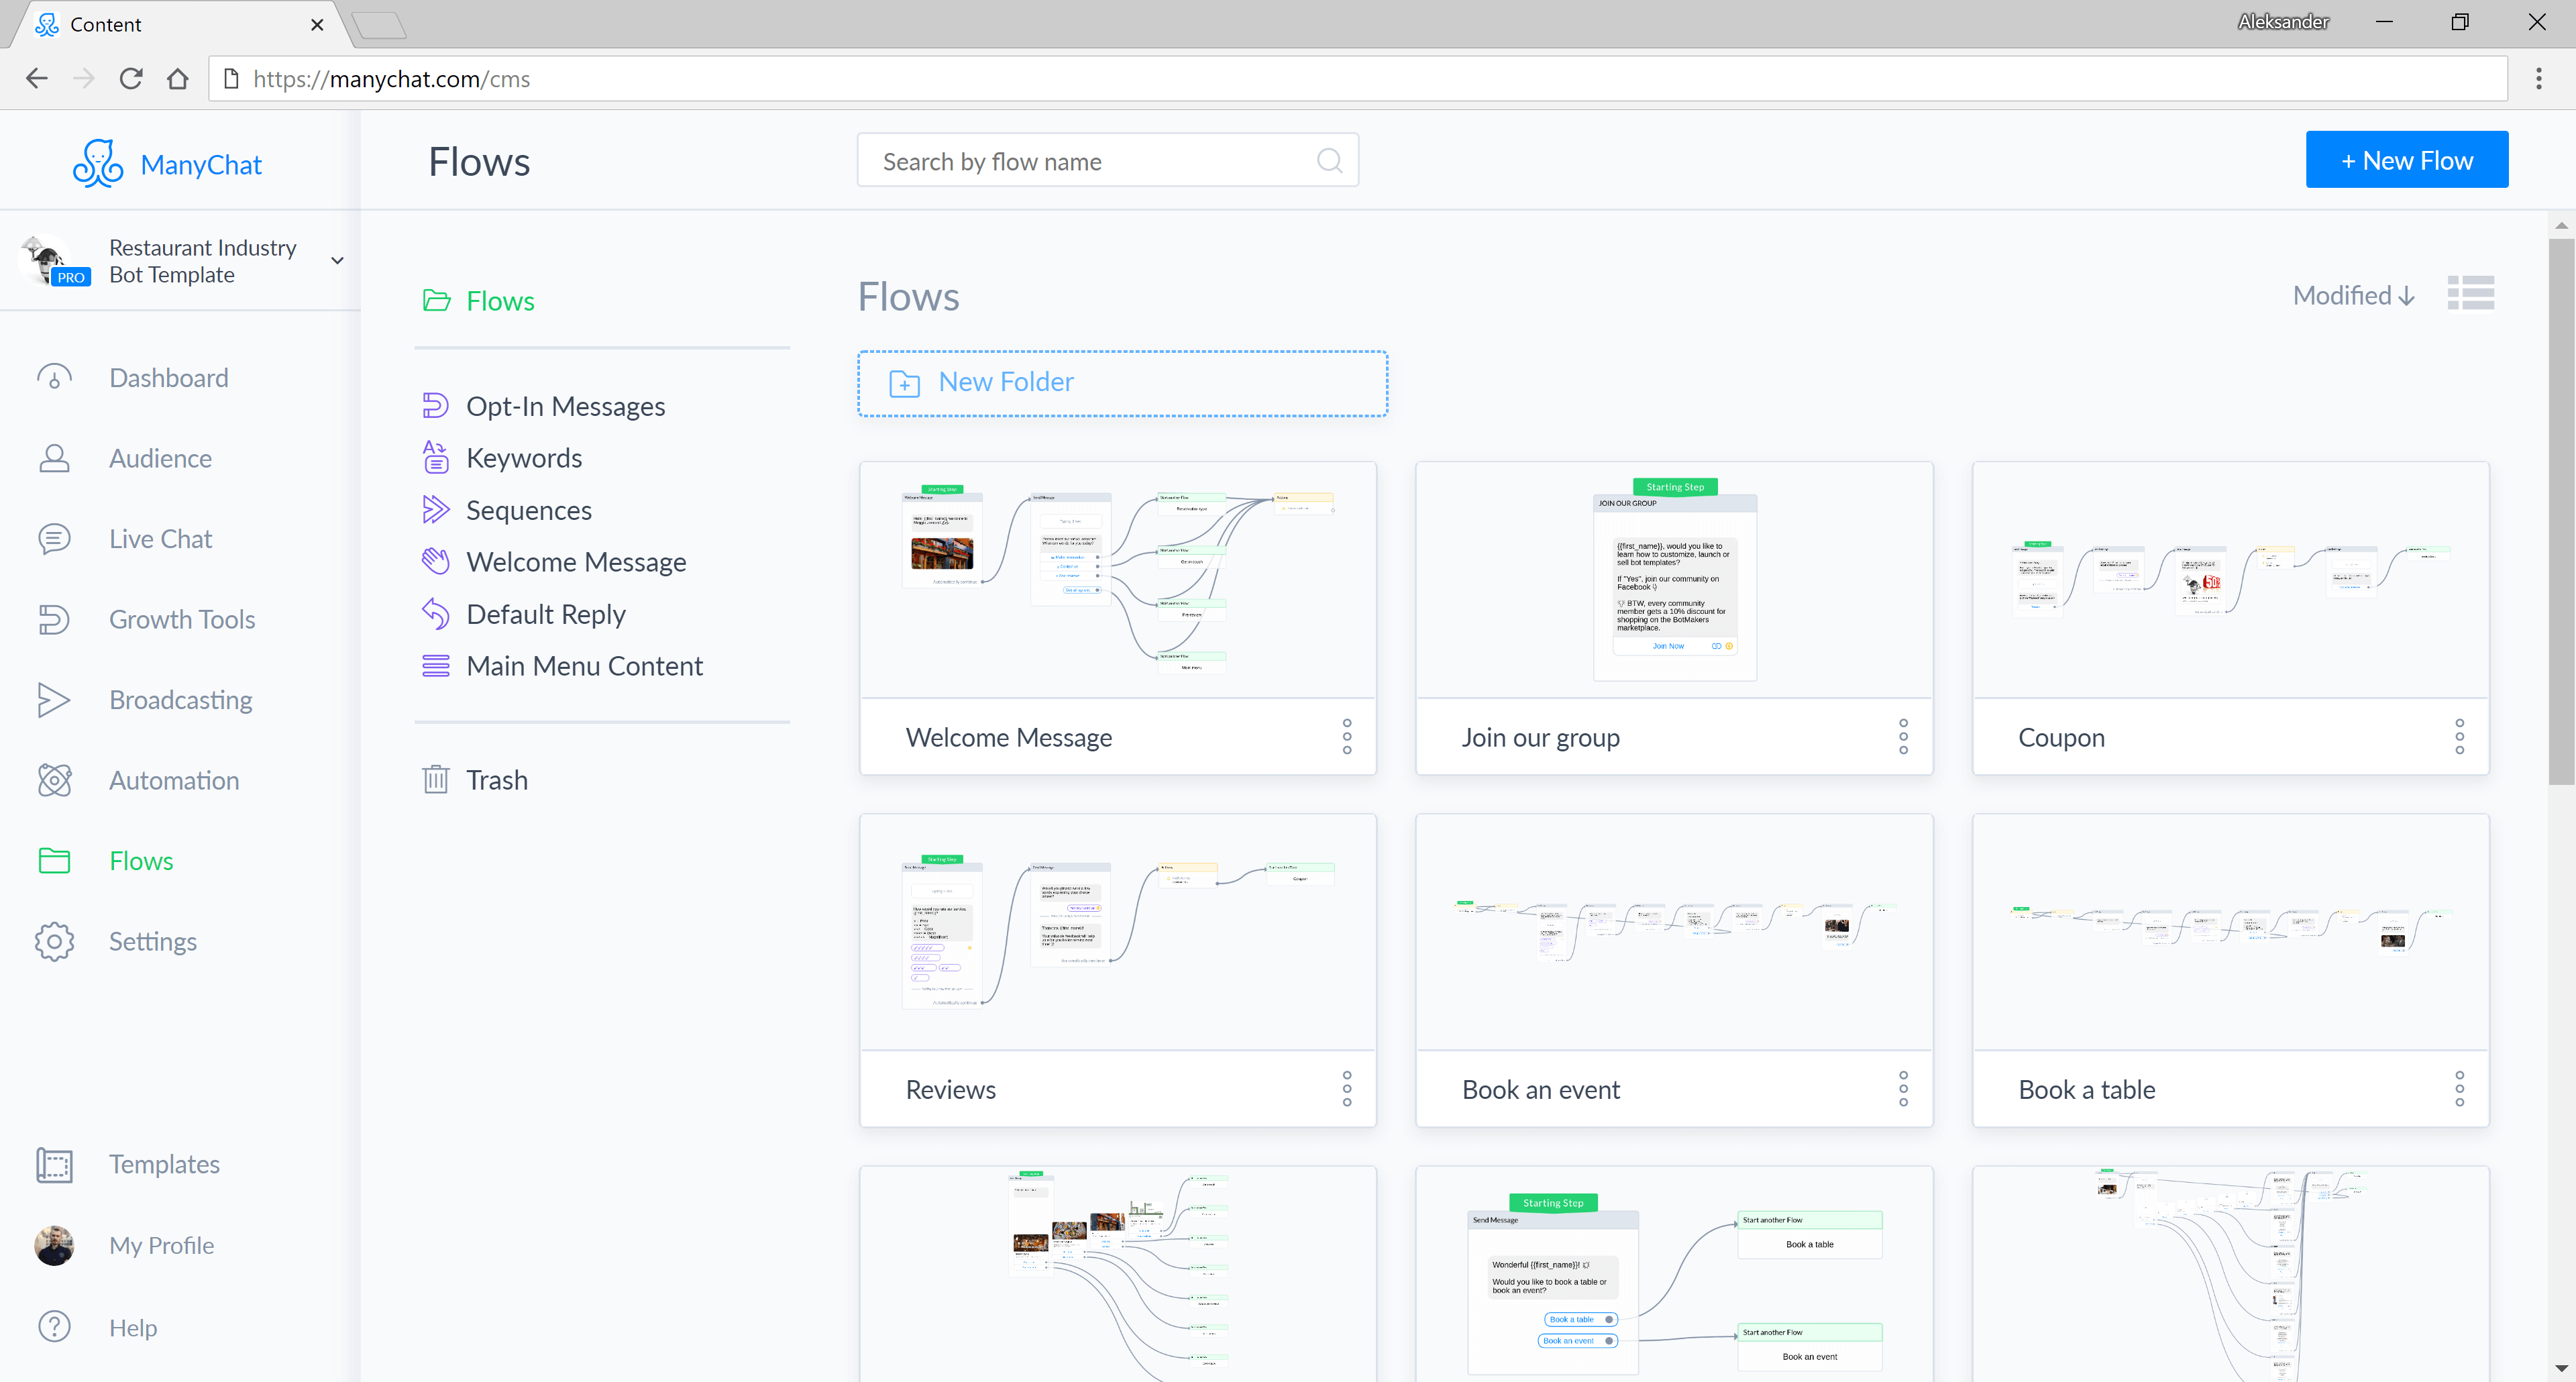 Chatfuel and ManyChat flow editor screenshot for Restaurant Industry Bot for Messenger